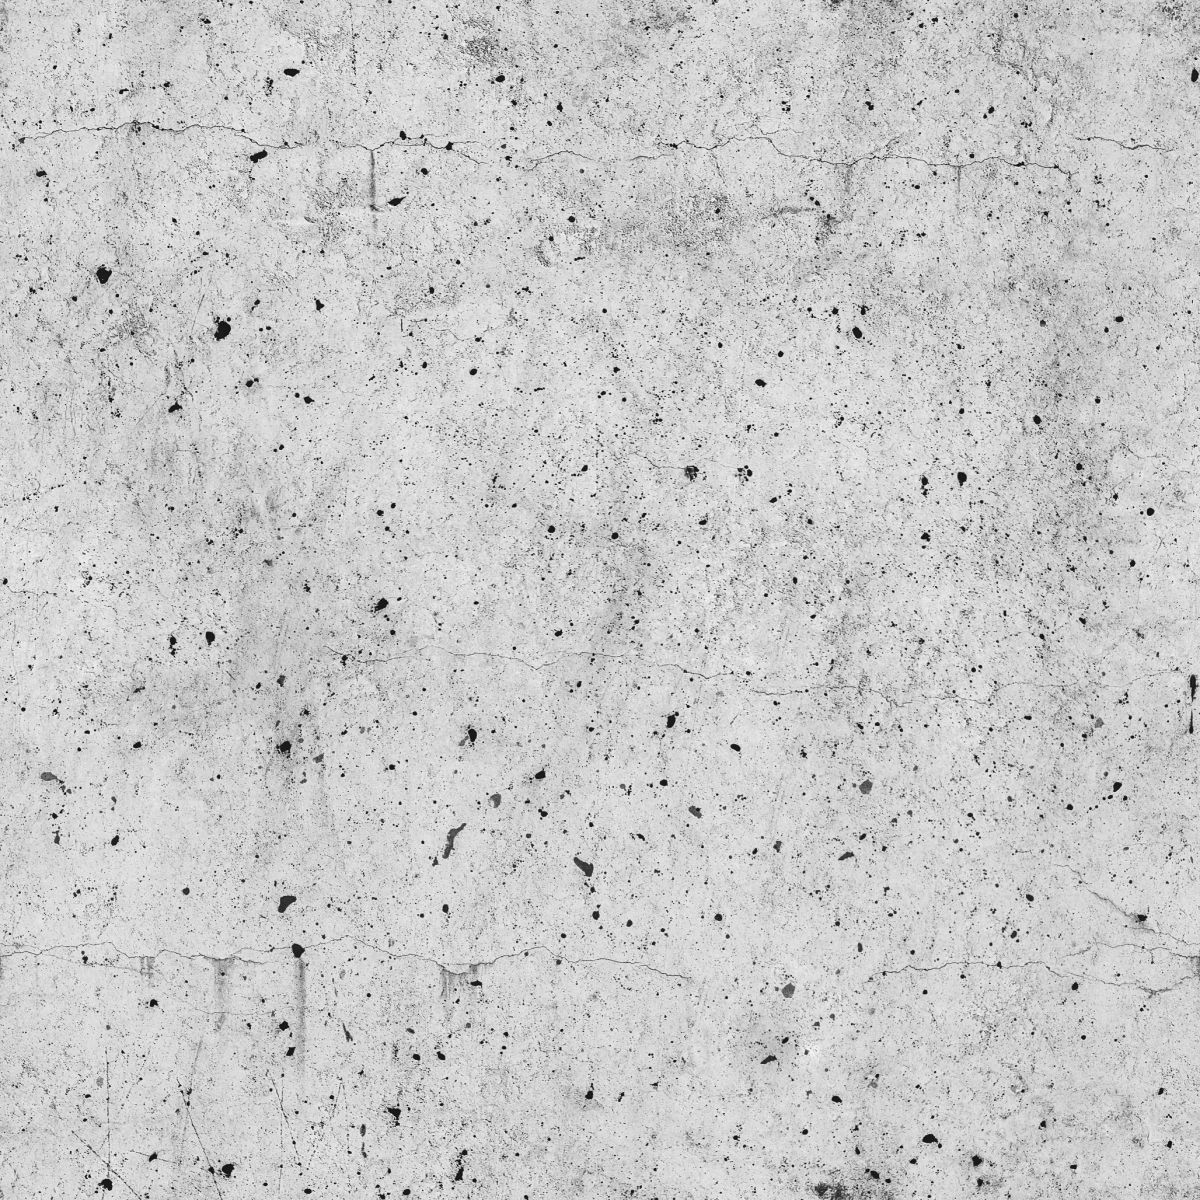 Just a Simple Seamless Concrete Texture | Concrete texture, Seamless  textures, Texture design